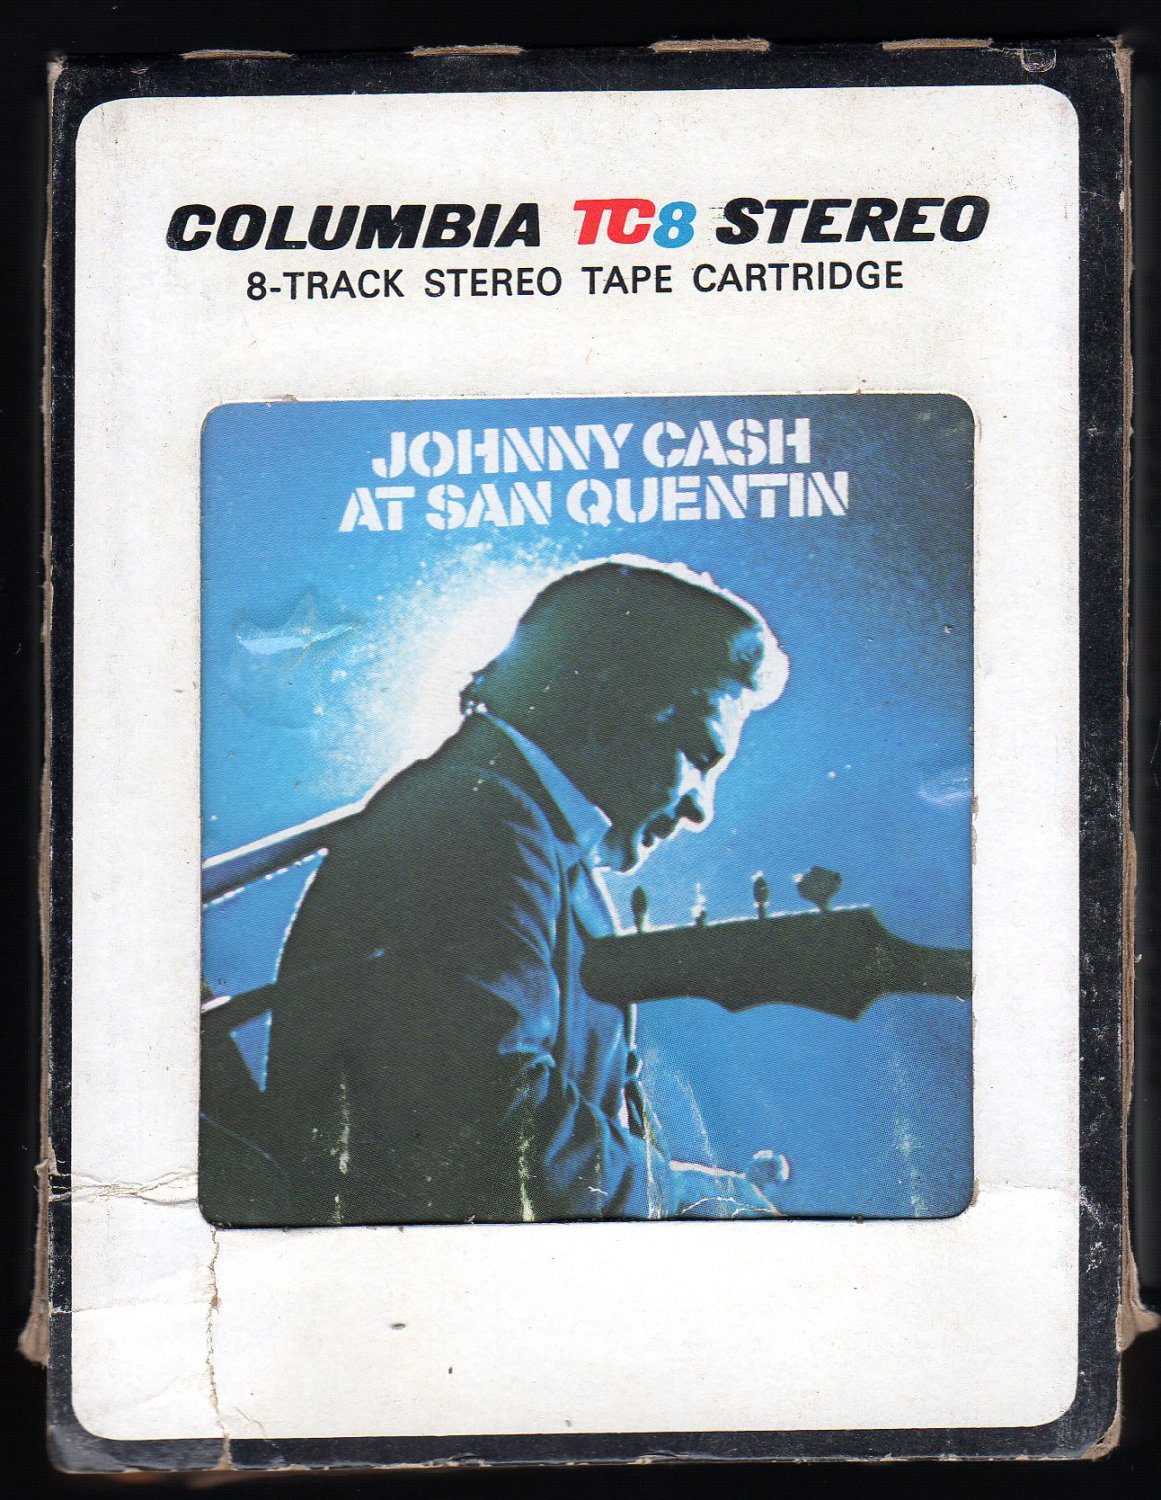 Johnny Cash - At San Quentin 1969 CBS 8-track tape